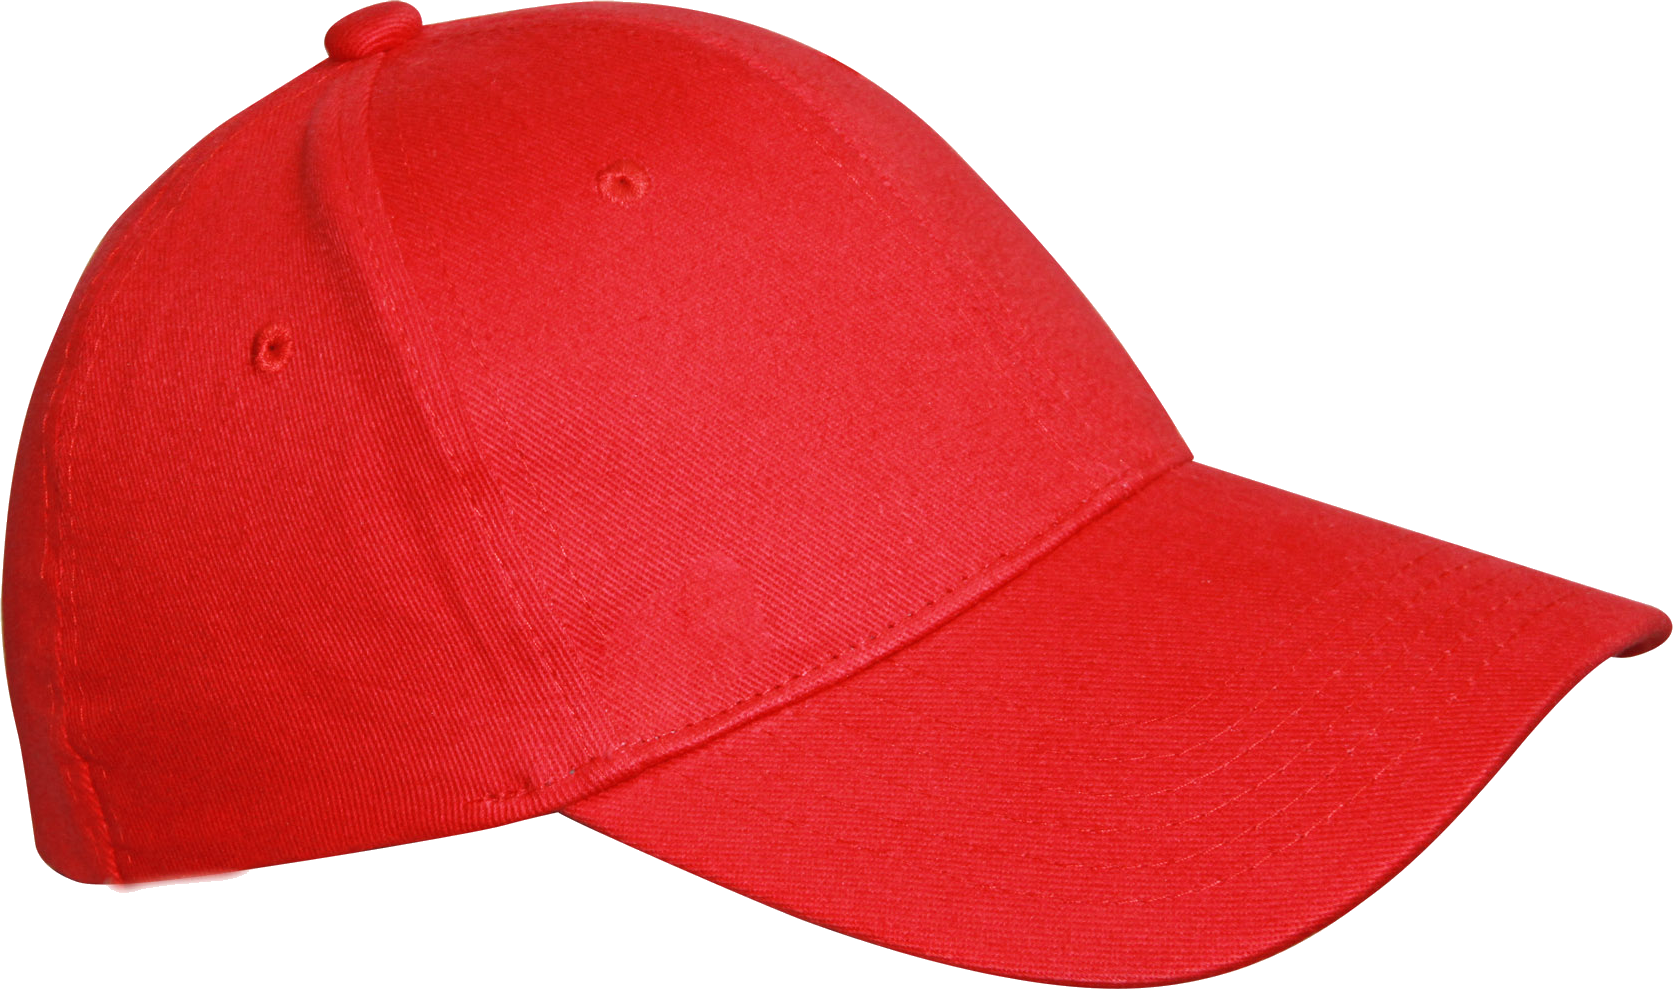 Baseball hat and sunglasses clipart image free library HQ Cap PNG Transparent Cap.PNG Images. | PlusPNG image free library